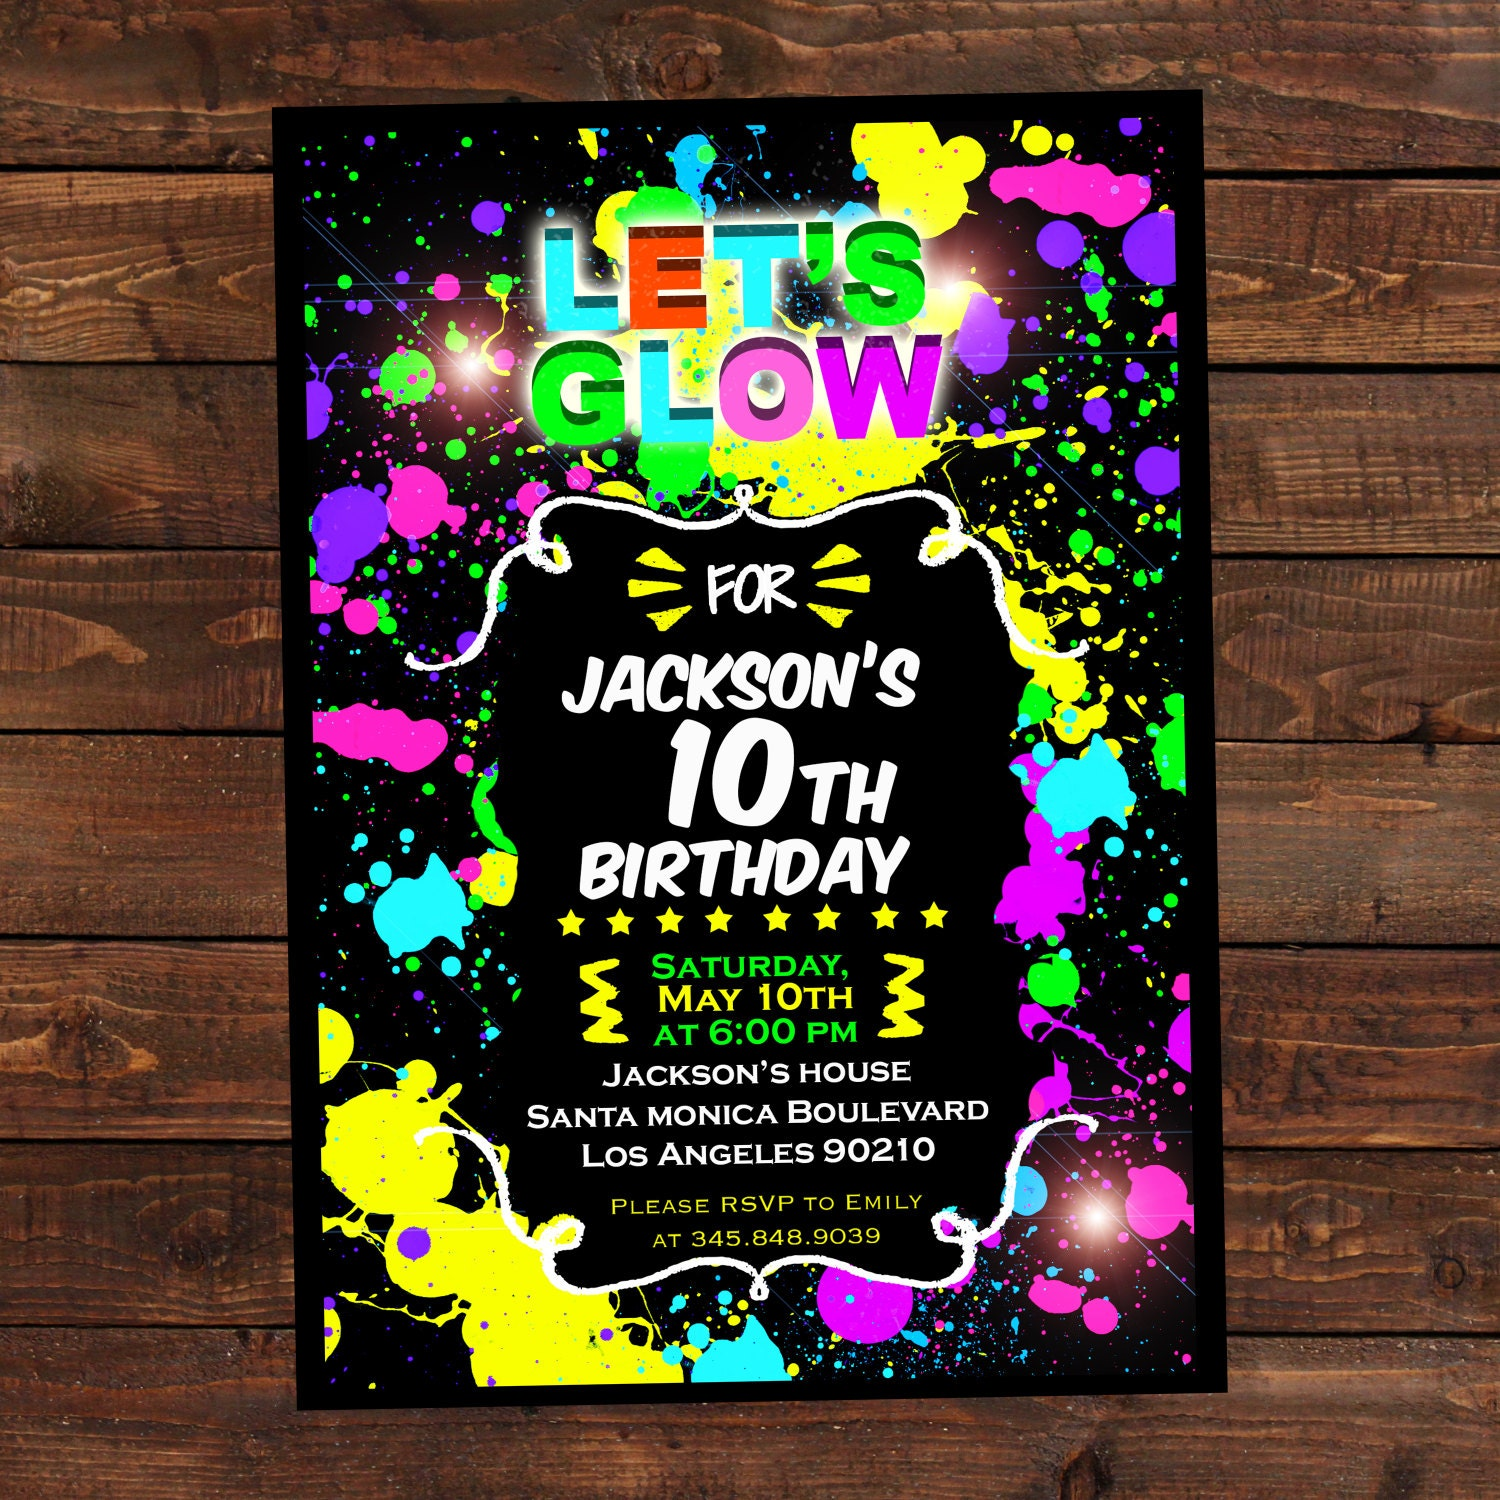 Glow in the dark invitations DIY Glow party invitations